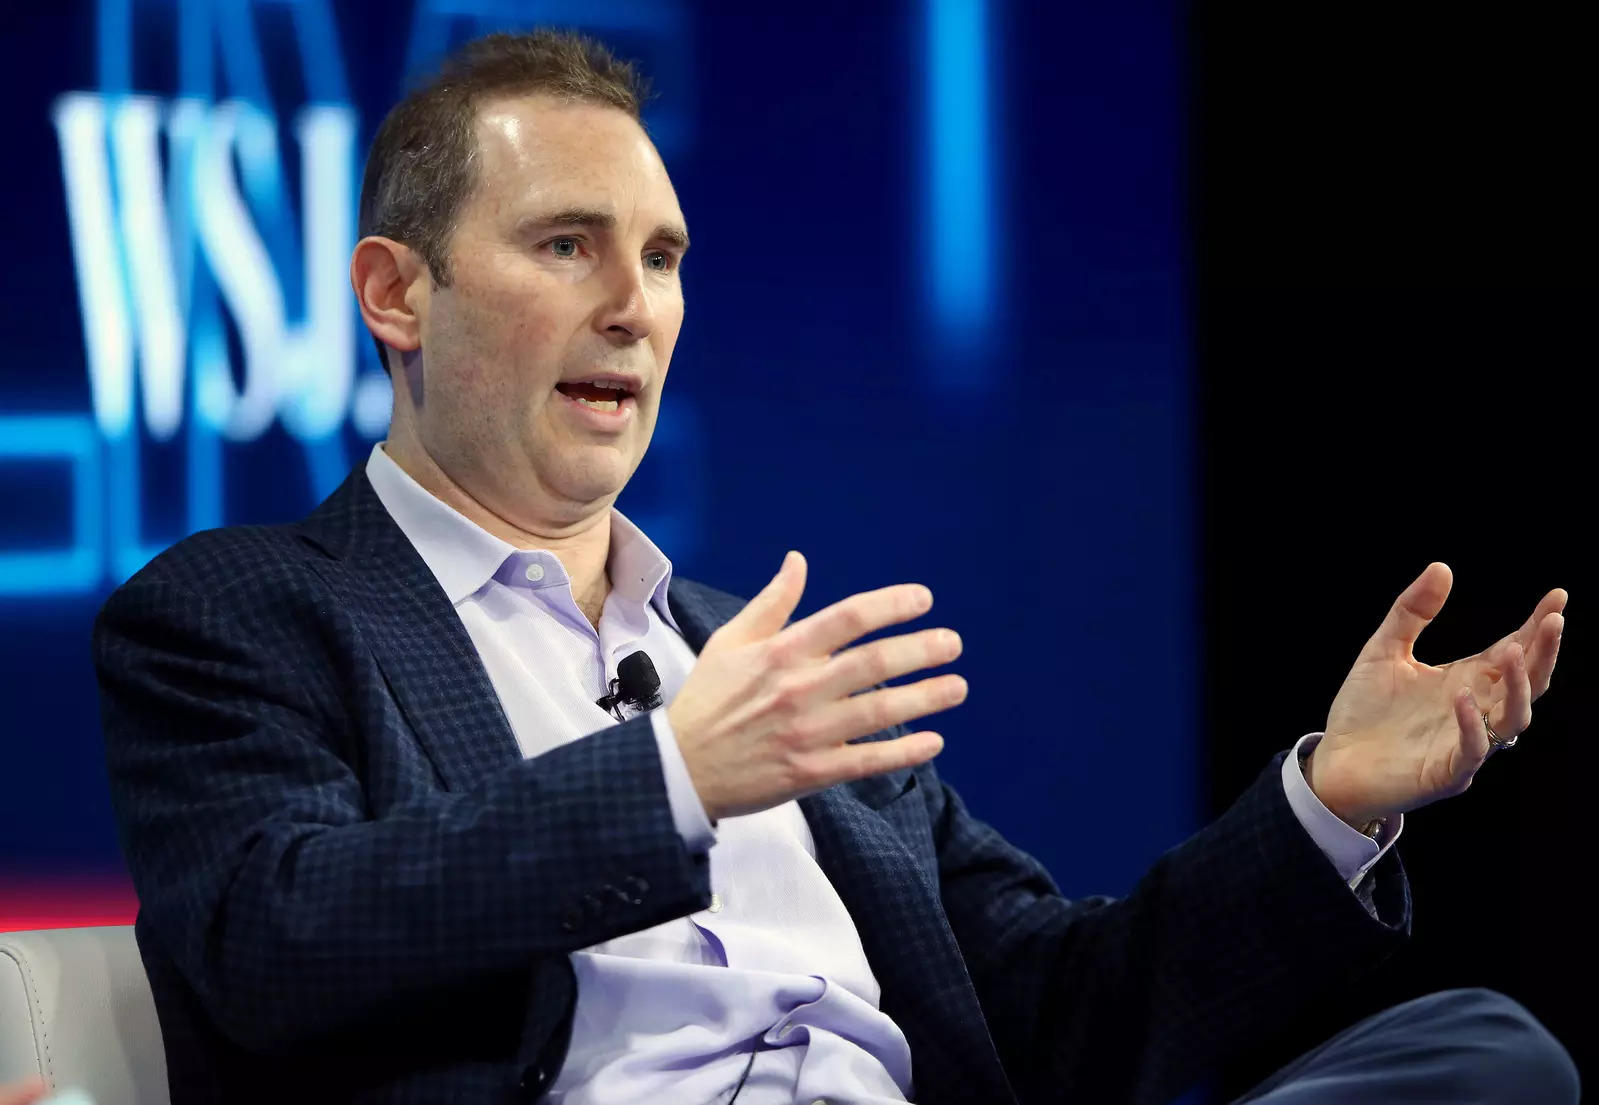 AWS' Andy Jassy, Jeff Bezos' successor, is most important person in tech